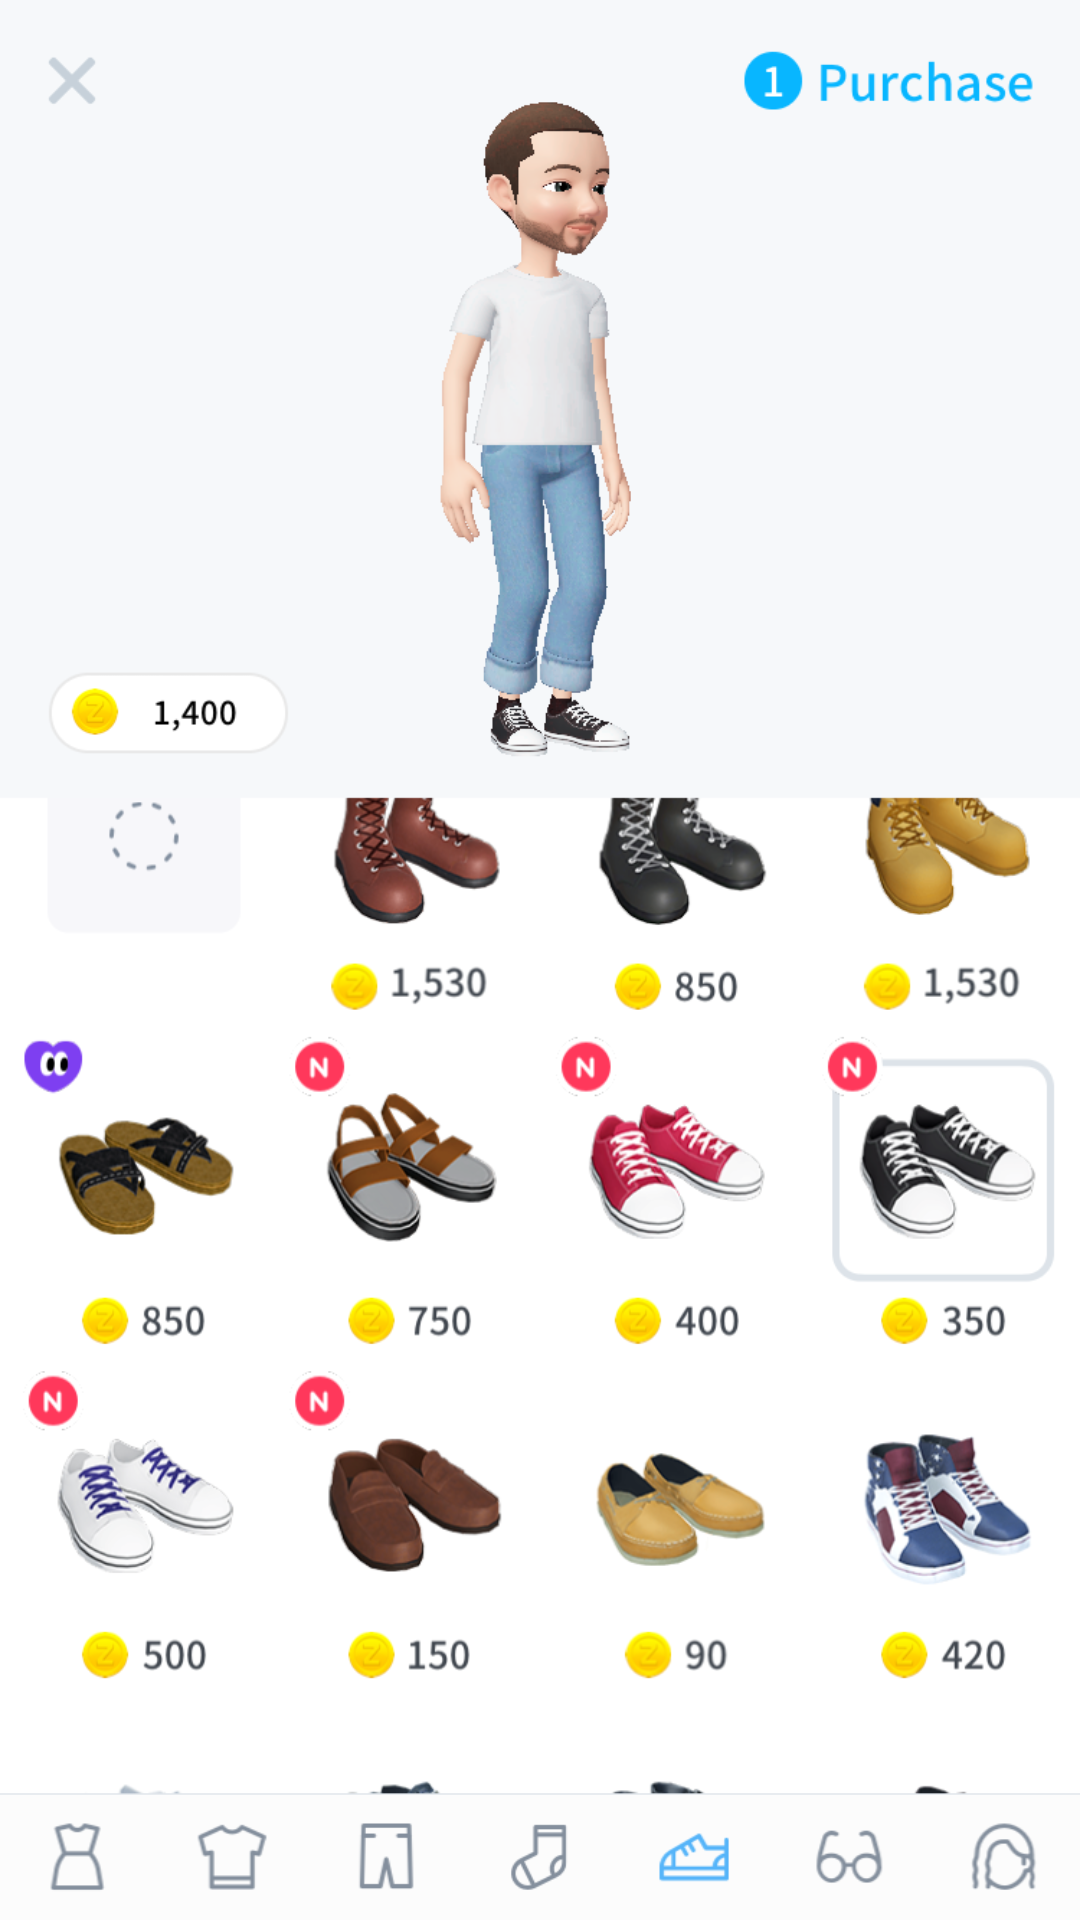 Top Twelve Zepeto Apk For Android 4 4 2 {Kwalai}